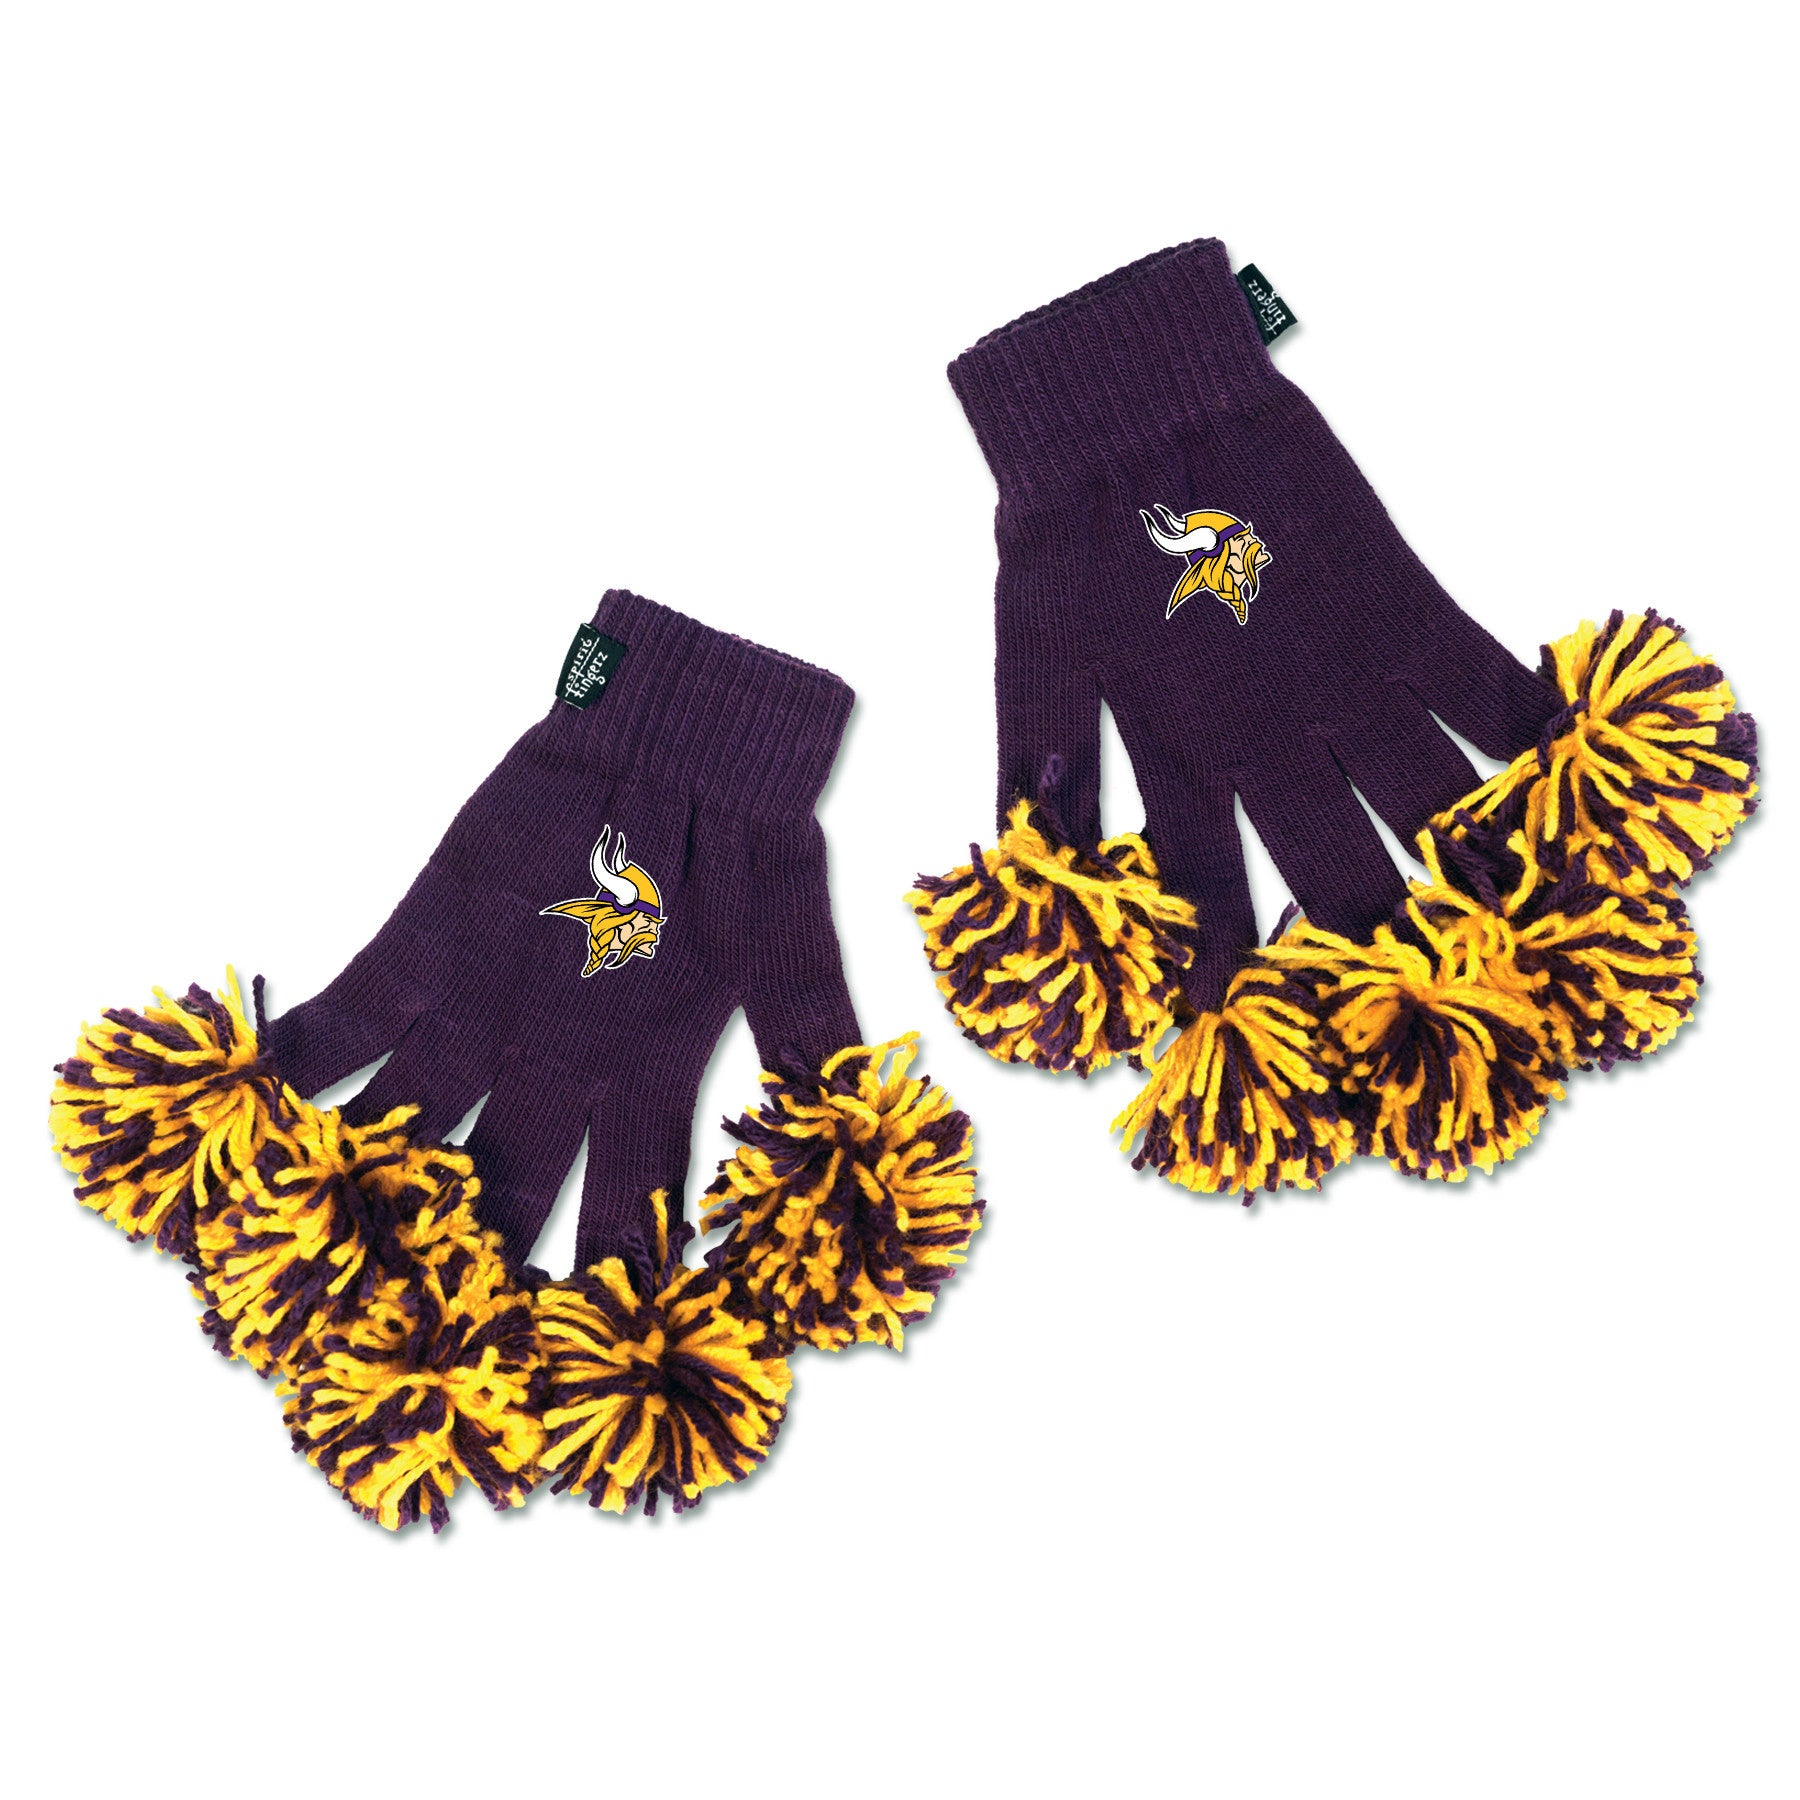 Minnesota Vikings NFL Spirit Fingerz Cheerleading Pom-Pom Gloves